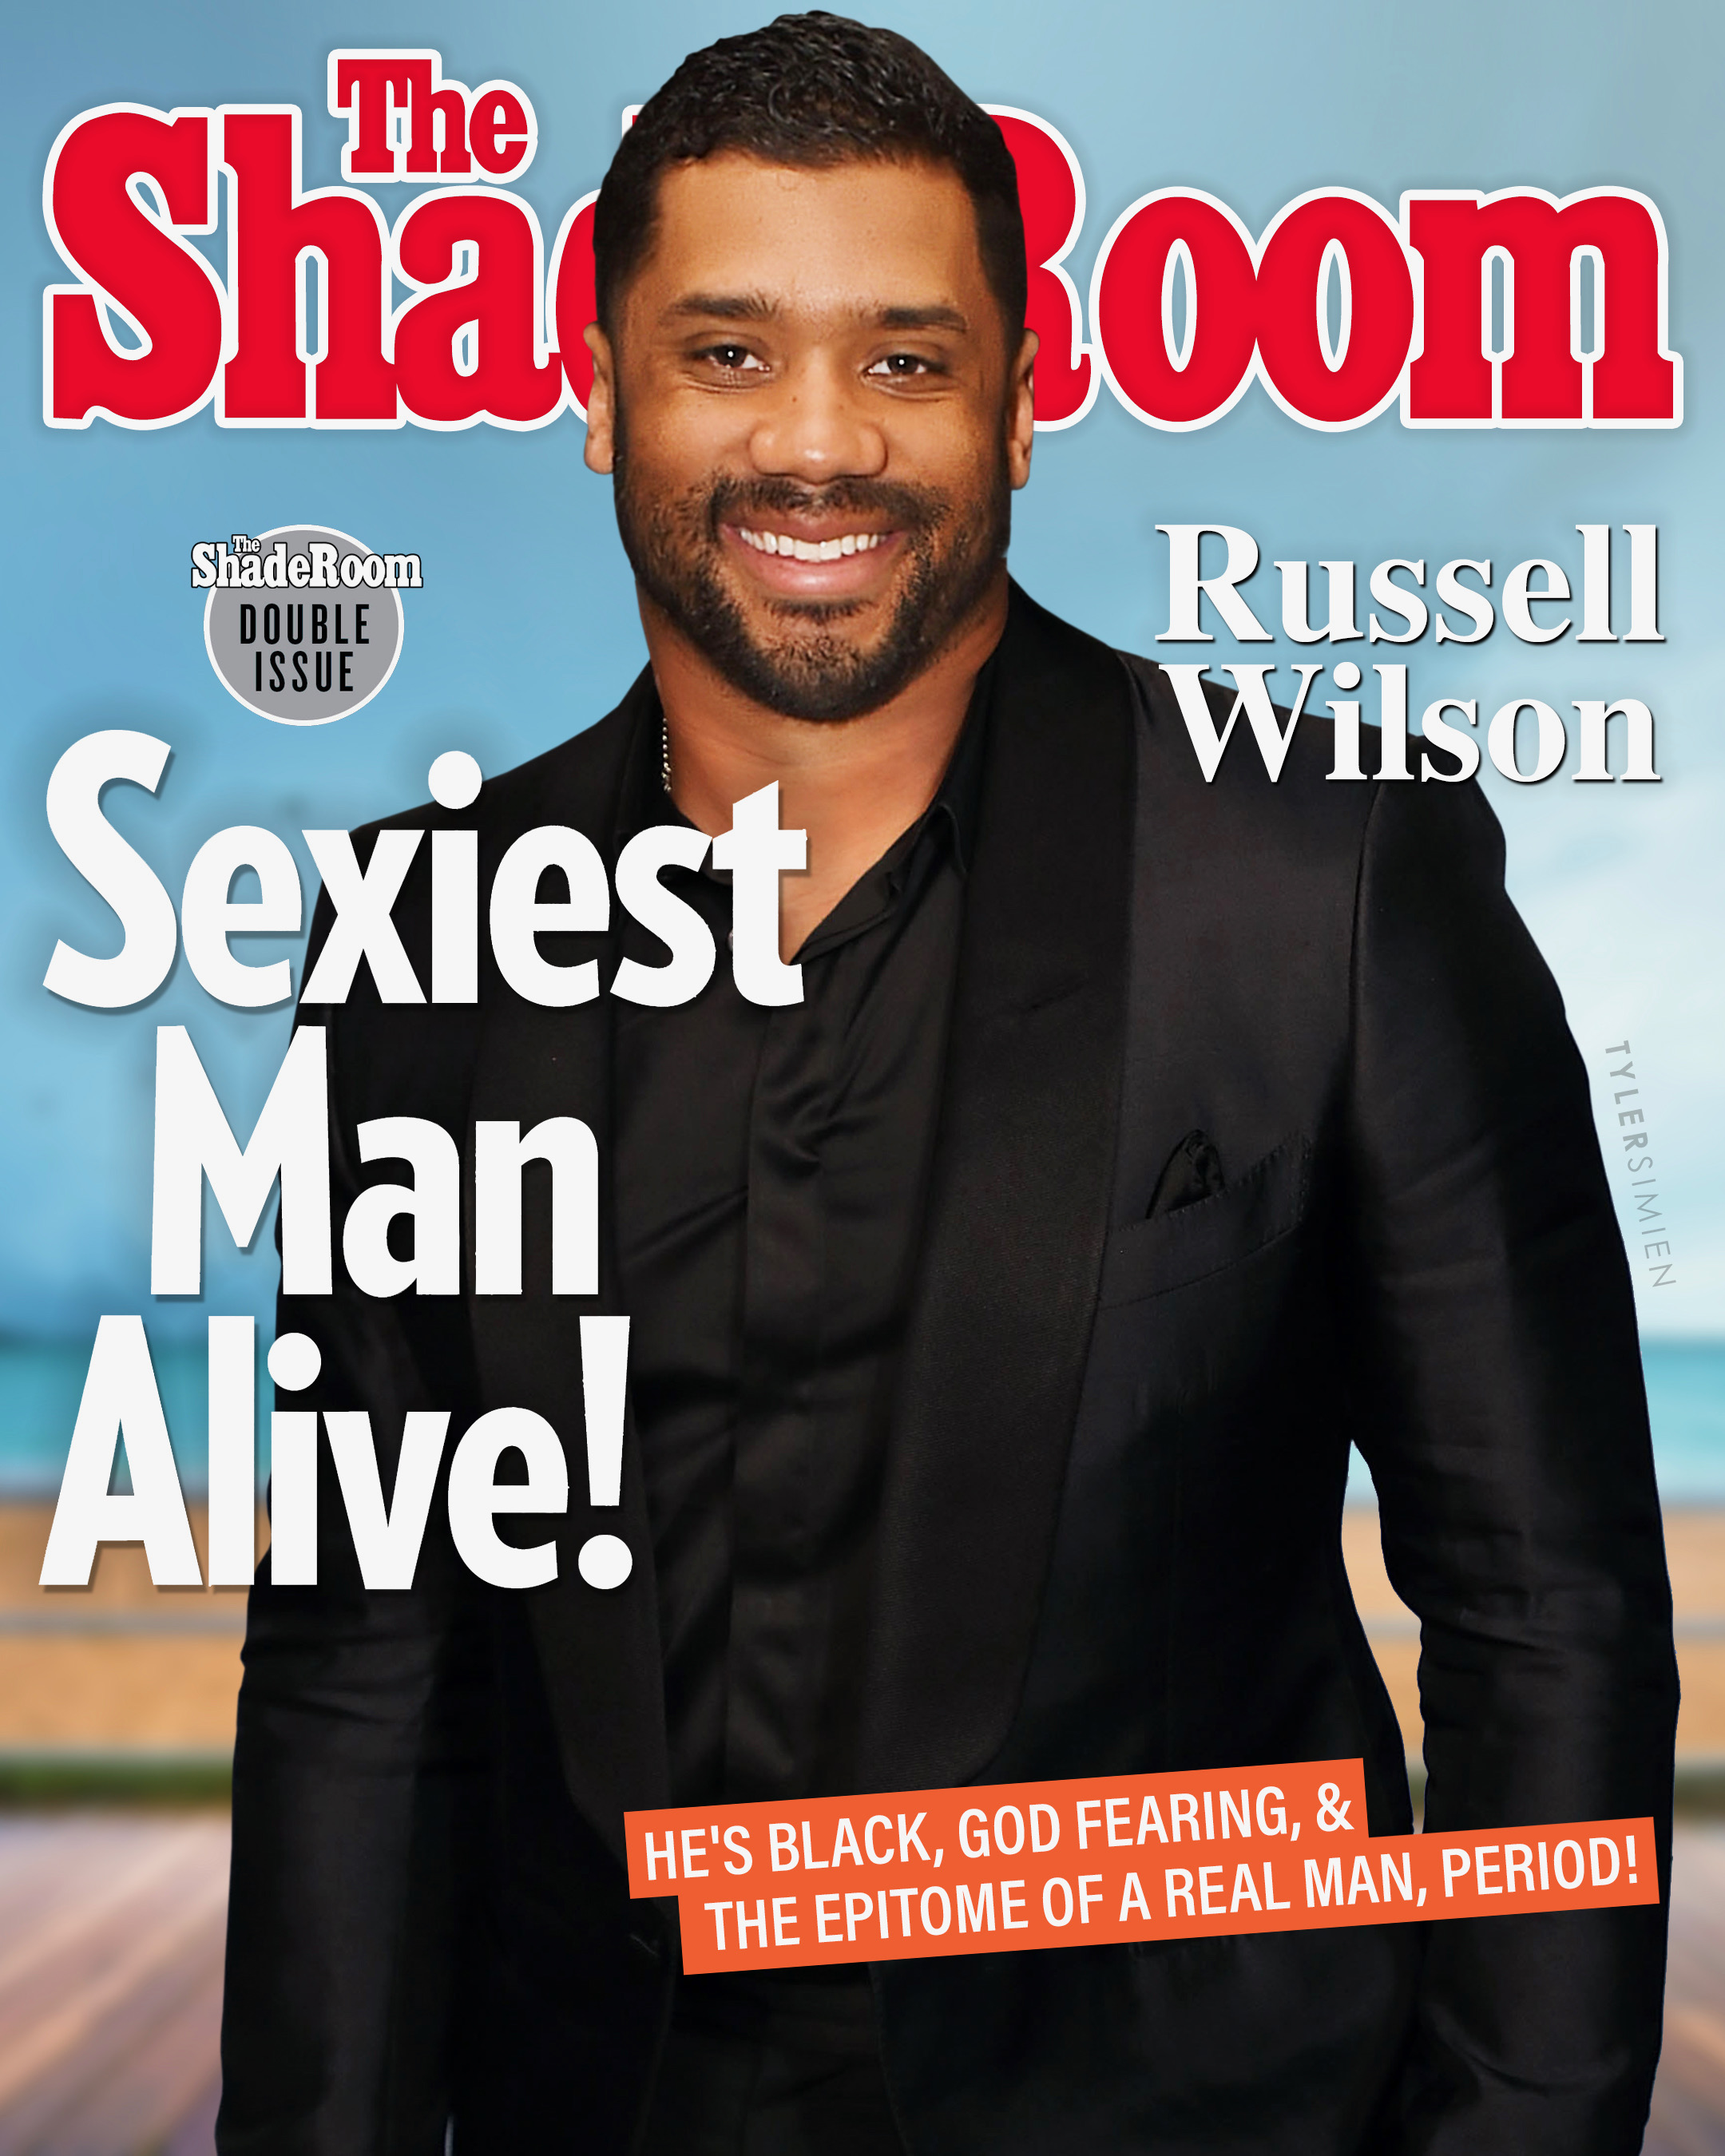 Russell Wilson is the shade room's sexiest man